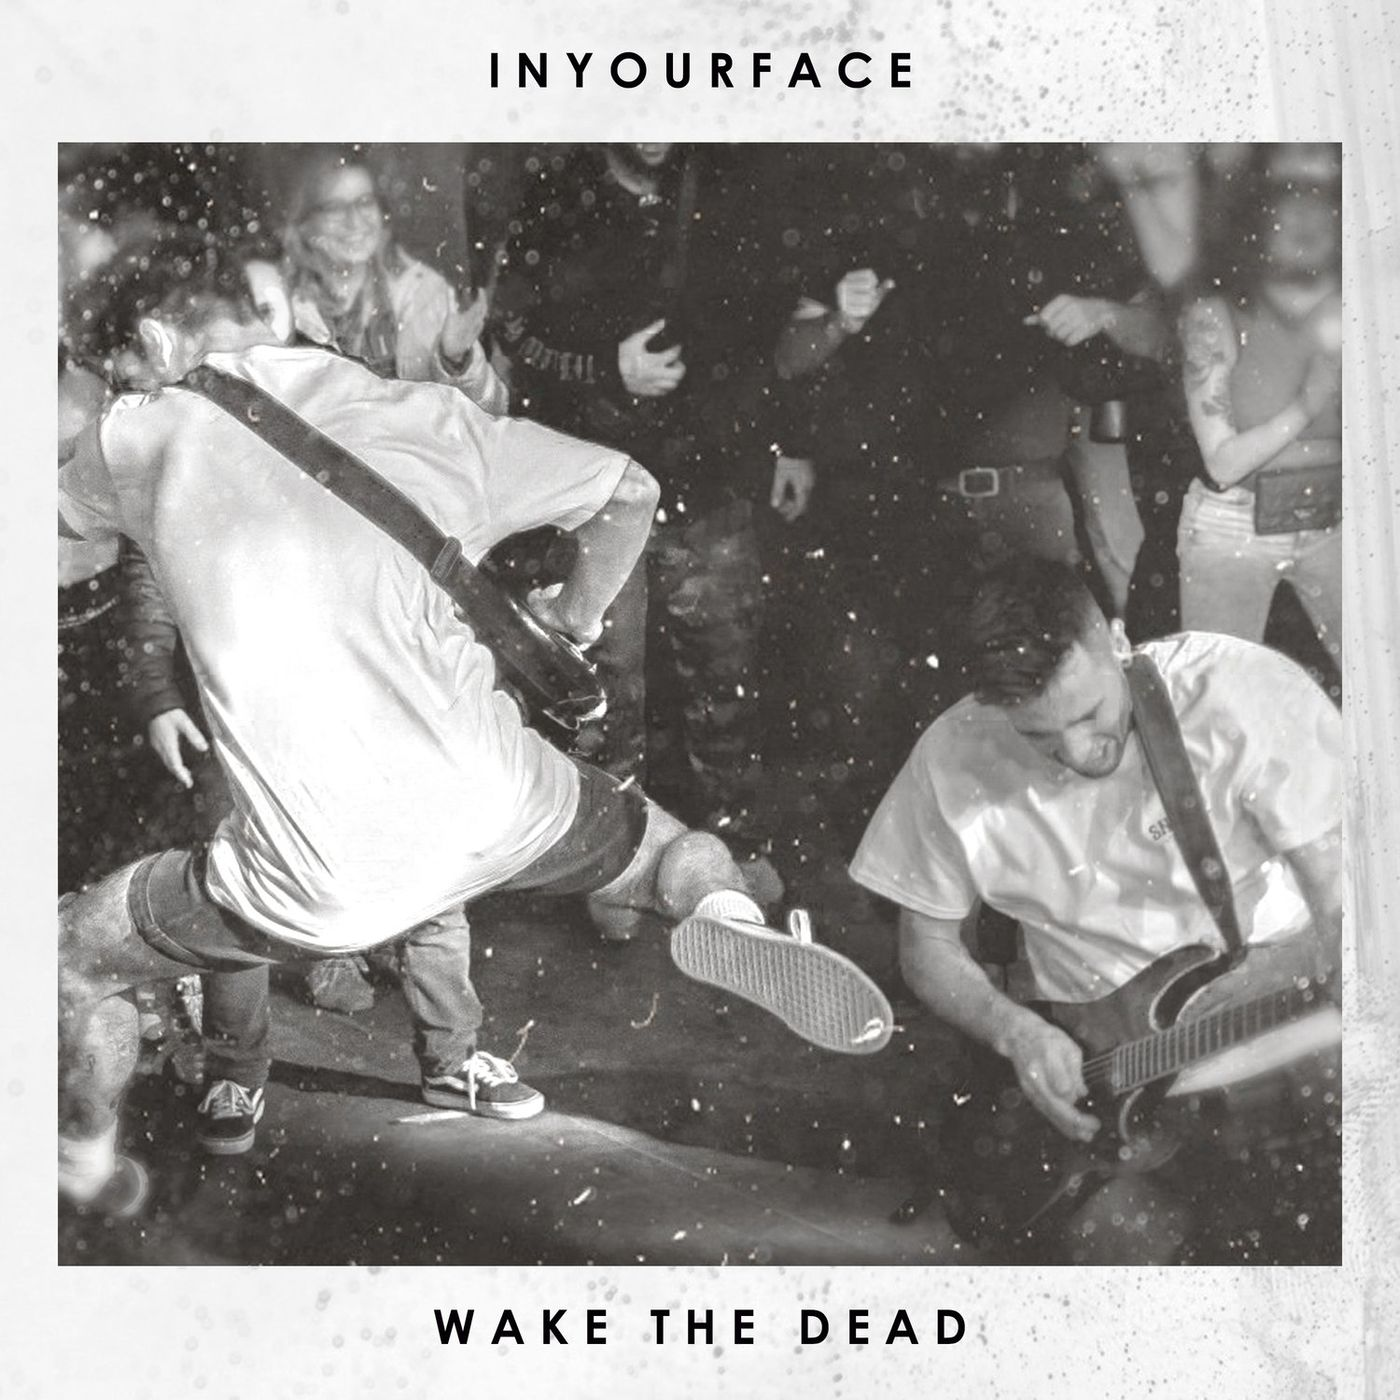 Inyourface - Wake the Dead [single] (2021)